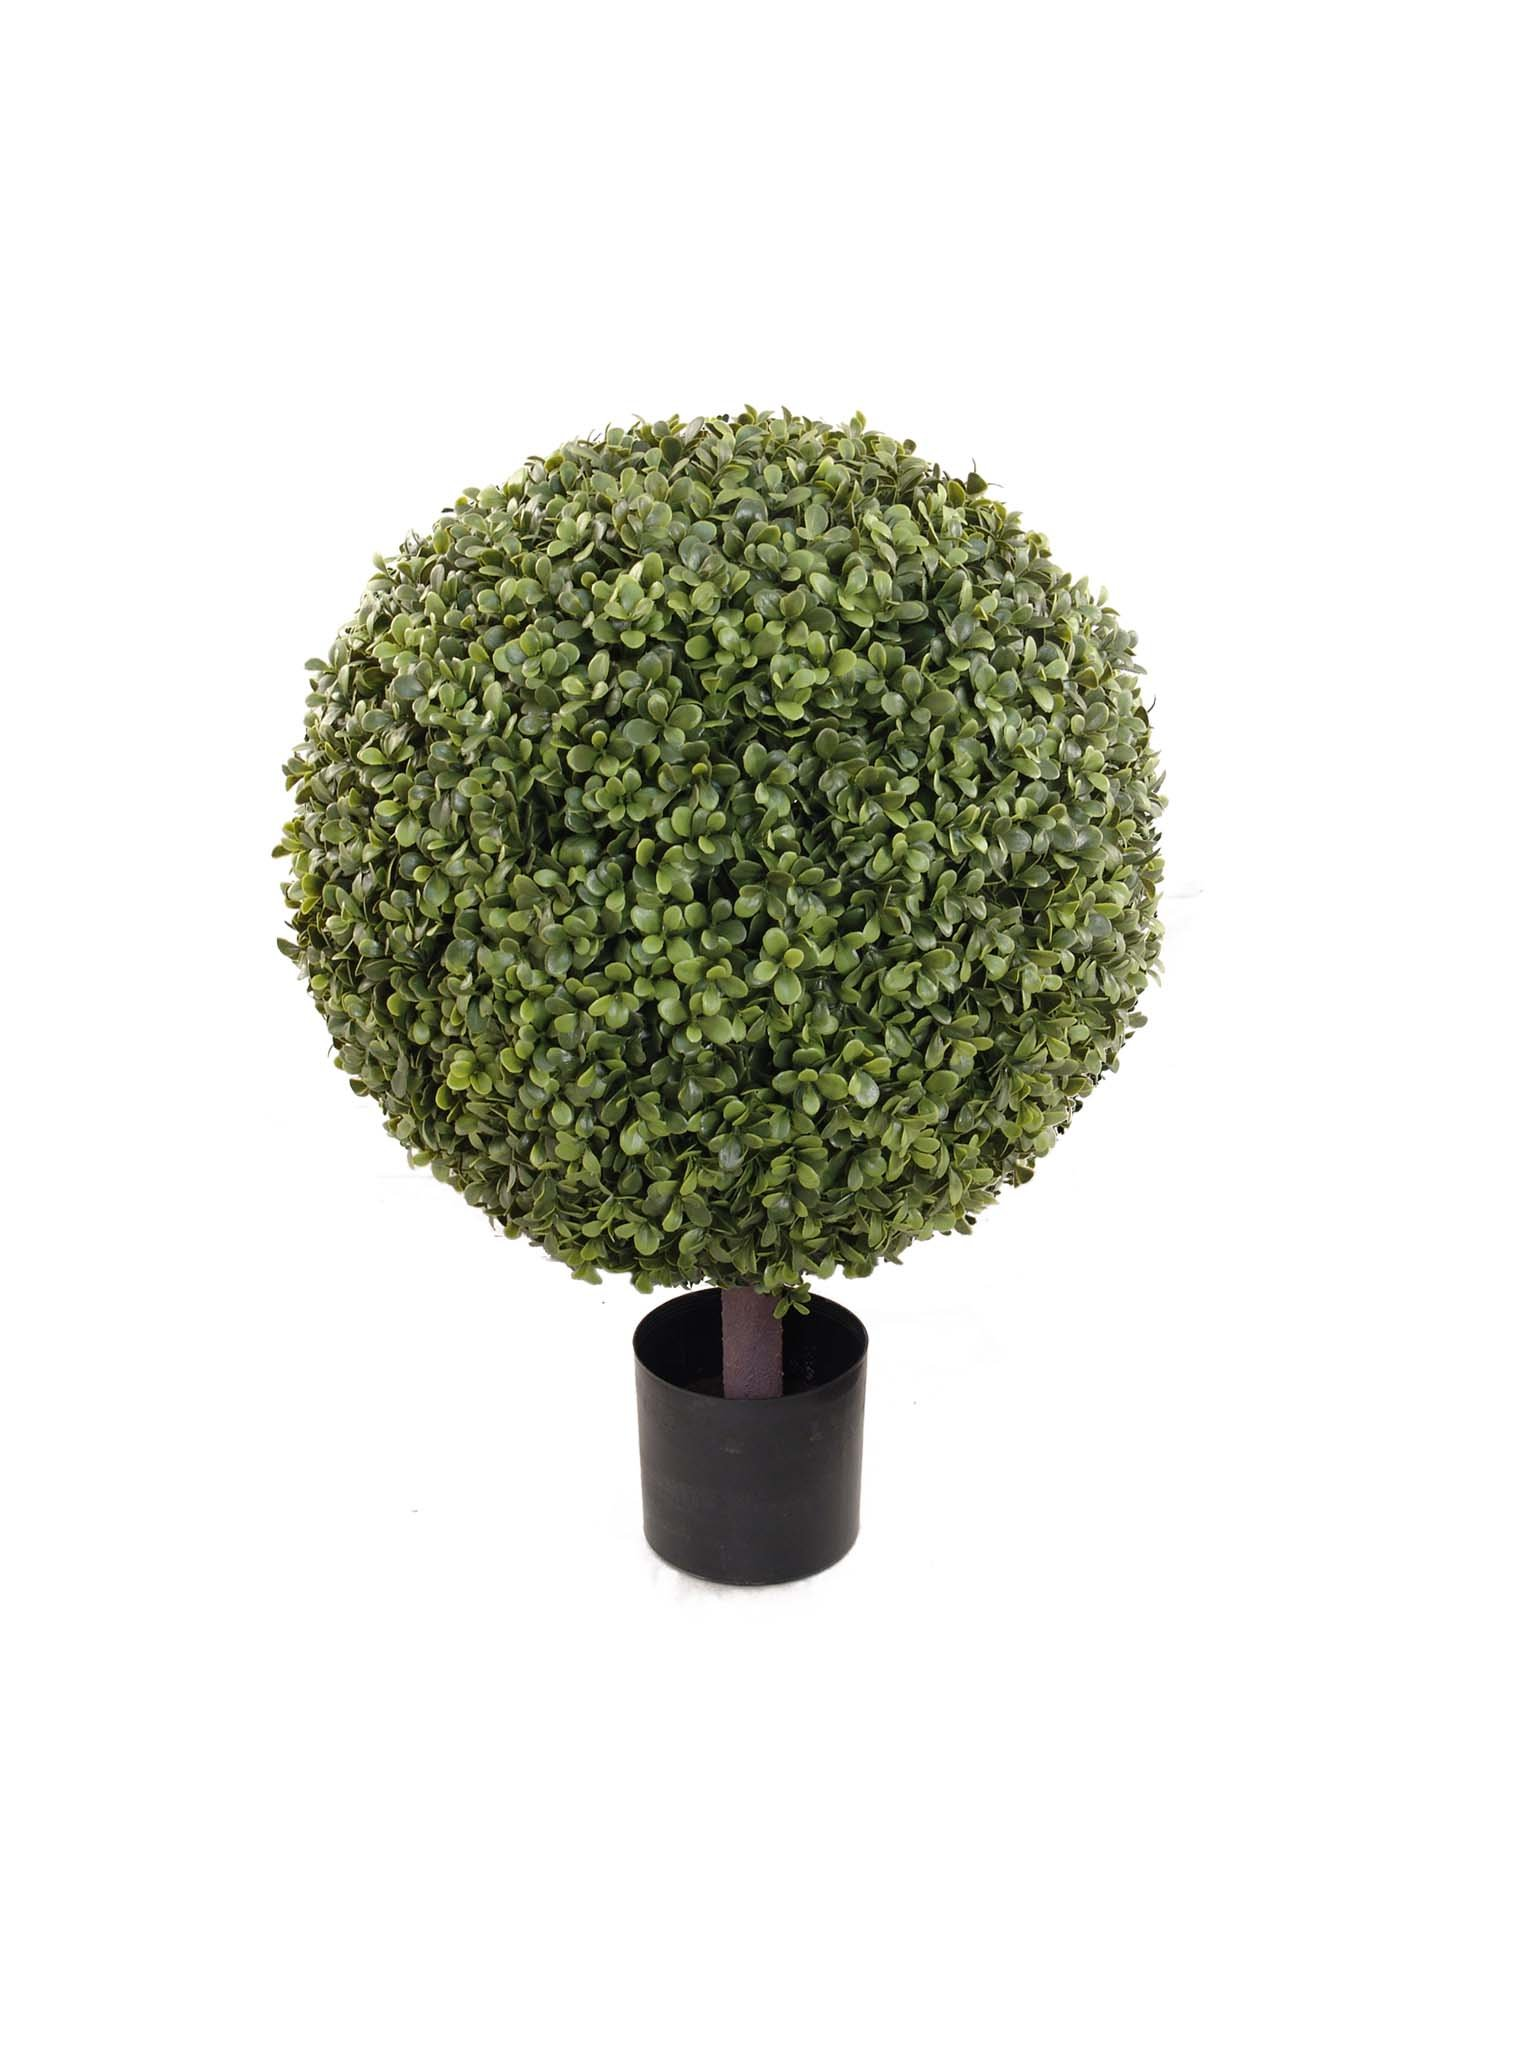 "Larksilk 26"" Boxwood Topiary Artificial Ball Tree Plant - Outdoor Topiary Trees Artificial Plants for Home Decor Indoor and Outdoor (Set of 2) by Hanford-design (Image #1)"